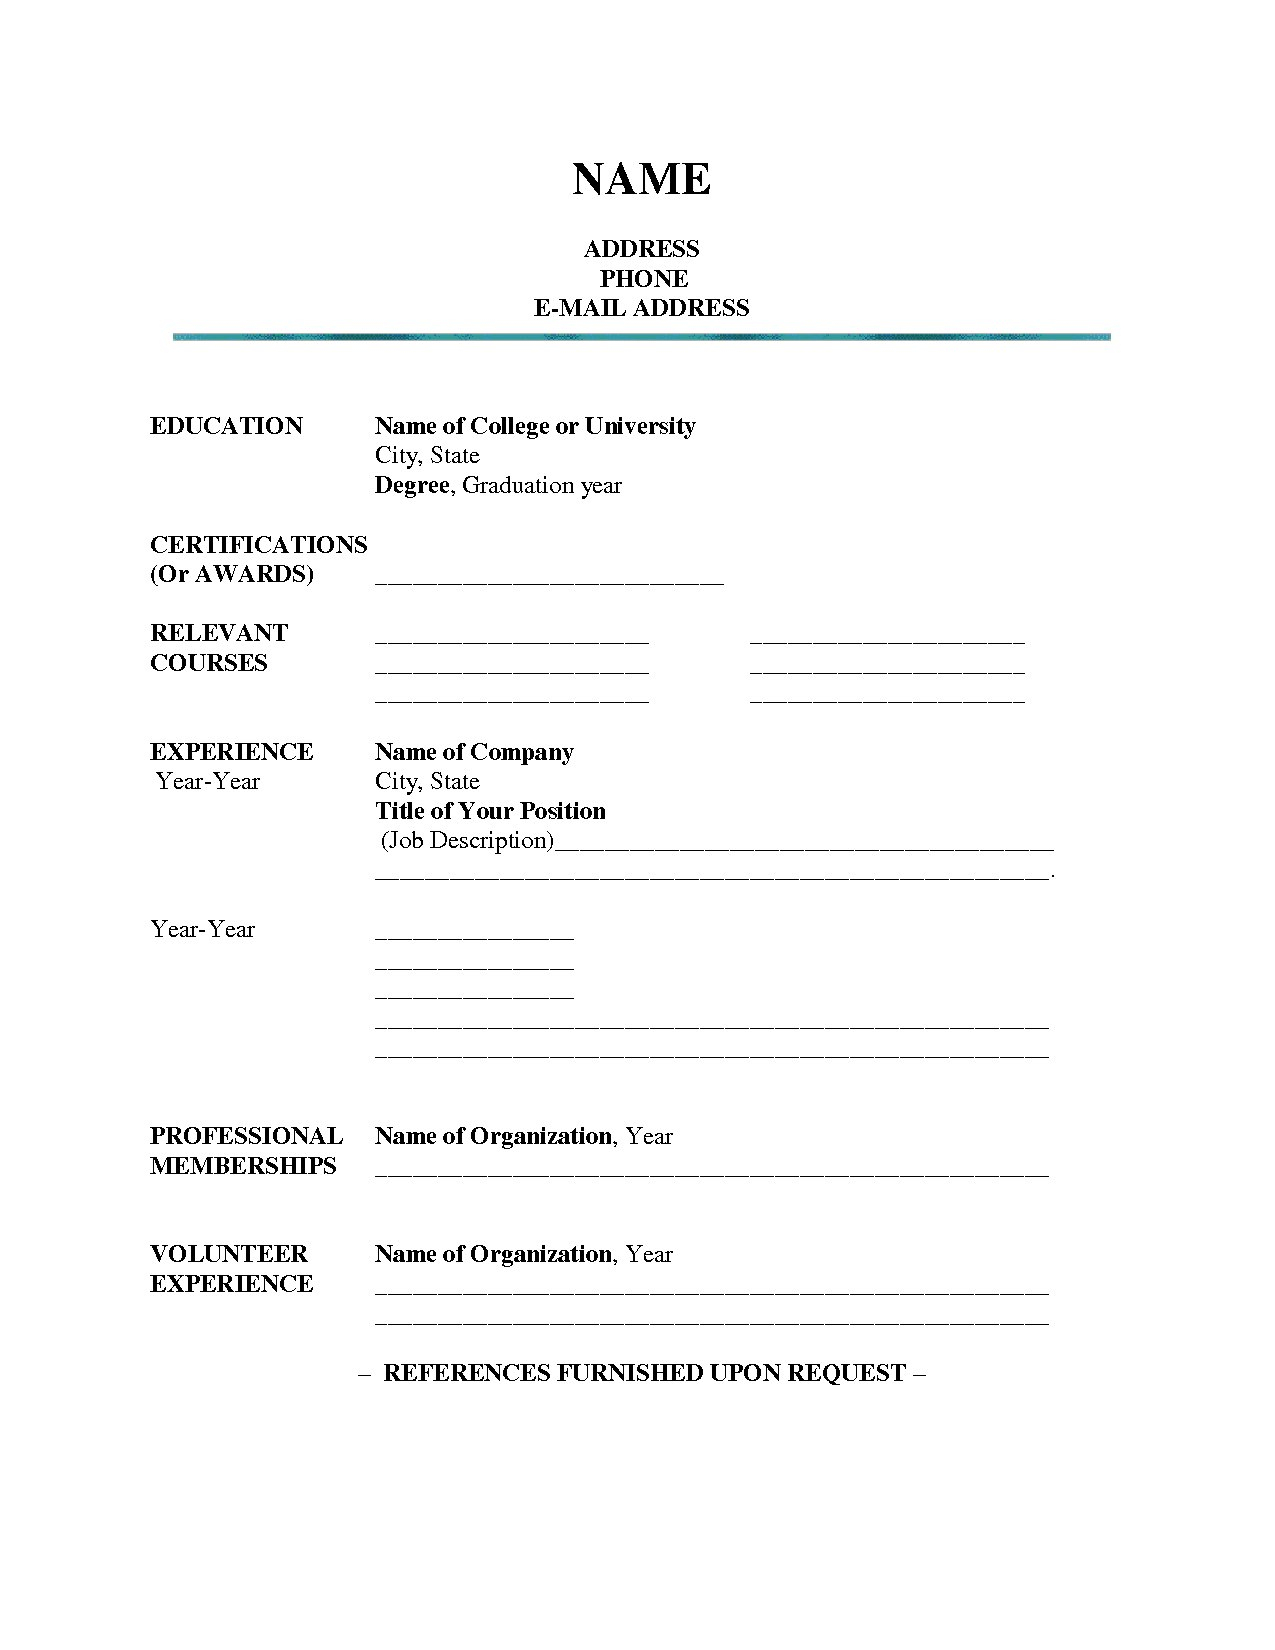 Blank Resume Form Template Best Template Collection Olzwb Within Blank Resume Templates For Microsoft Word